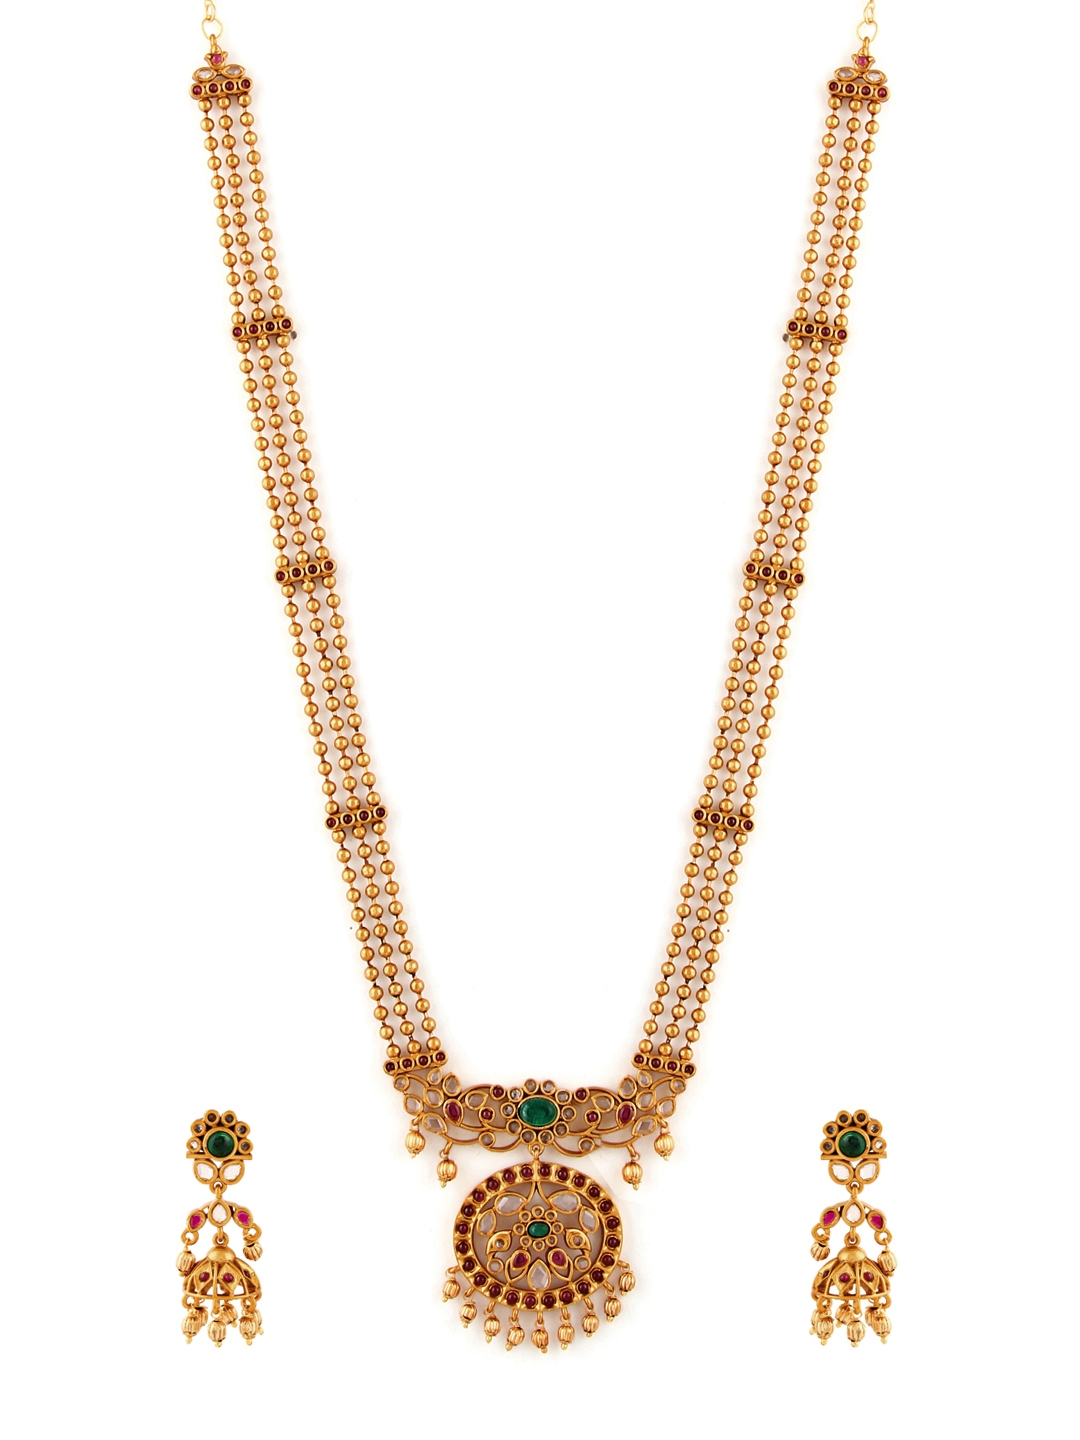 89b9979f0d Buy Rubans Women Red Gold Plated Handcrafted Jewellery Set ...